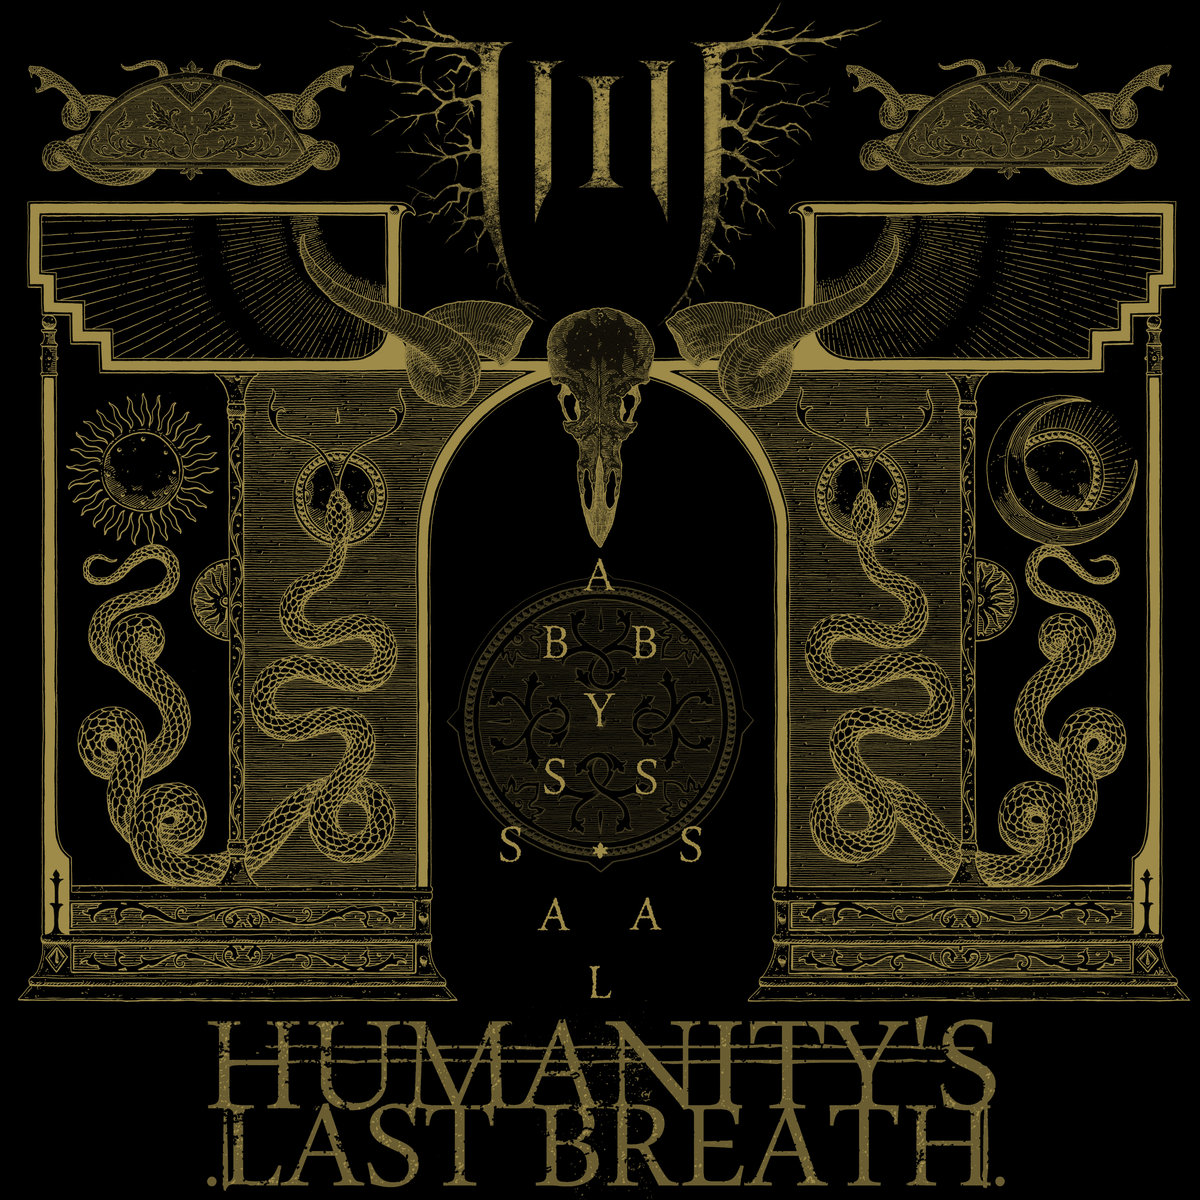 humanitys-last-breath-abyssal-daemonisch-gut-album-review